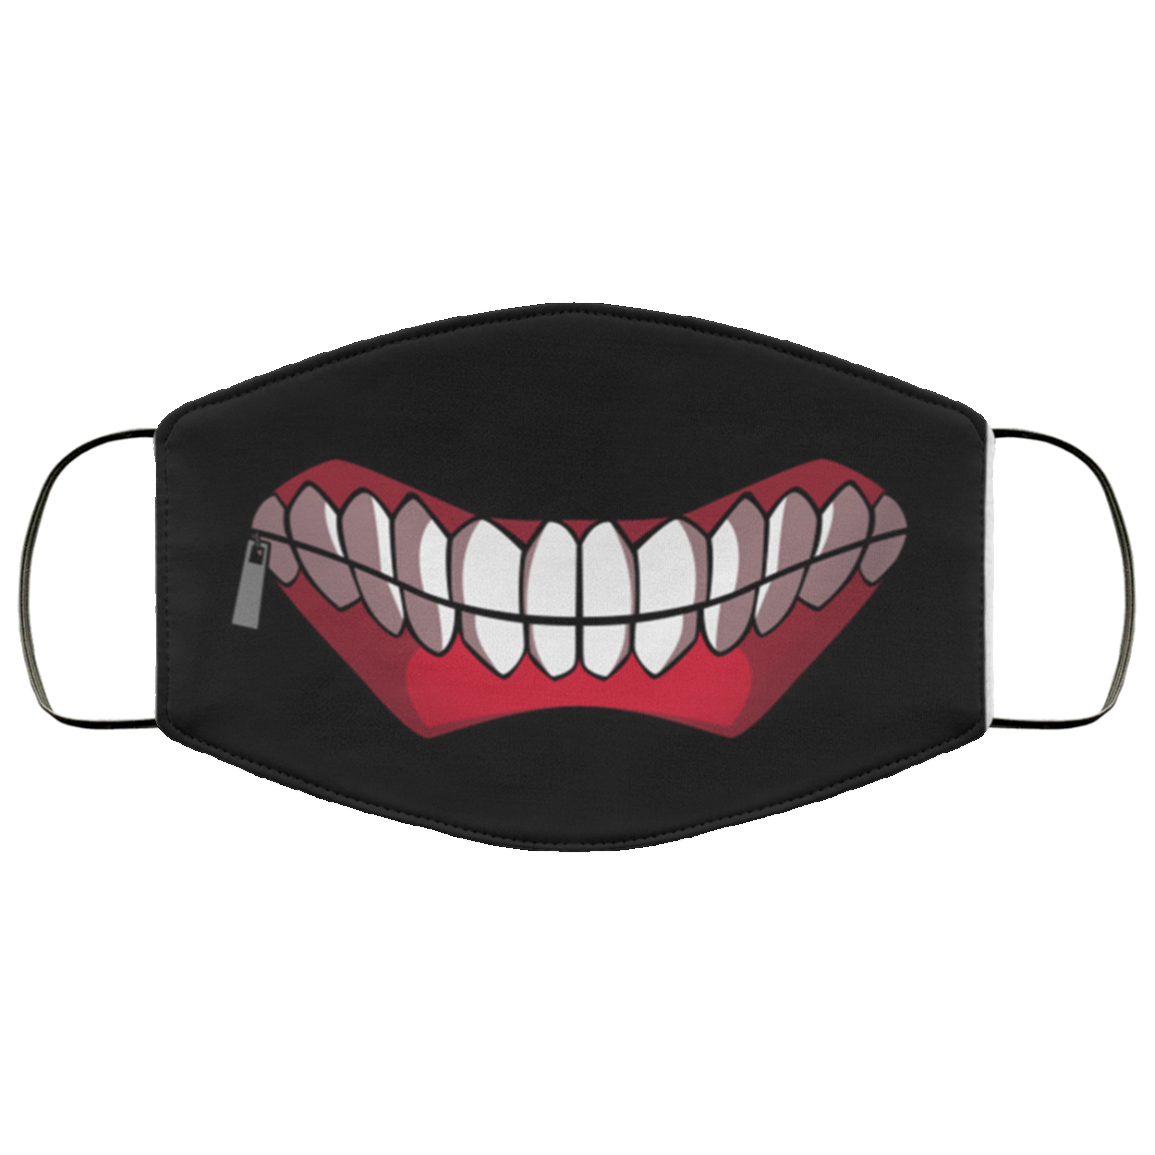 Tokyo Ghoul Mouth Face Mask Washable Reusable Tokyo Ghoul Mask Ghoul